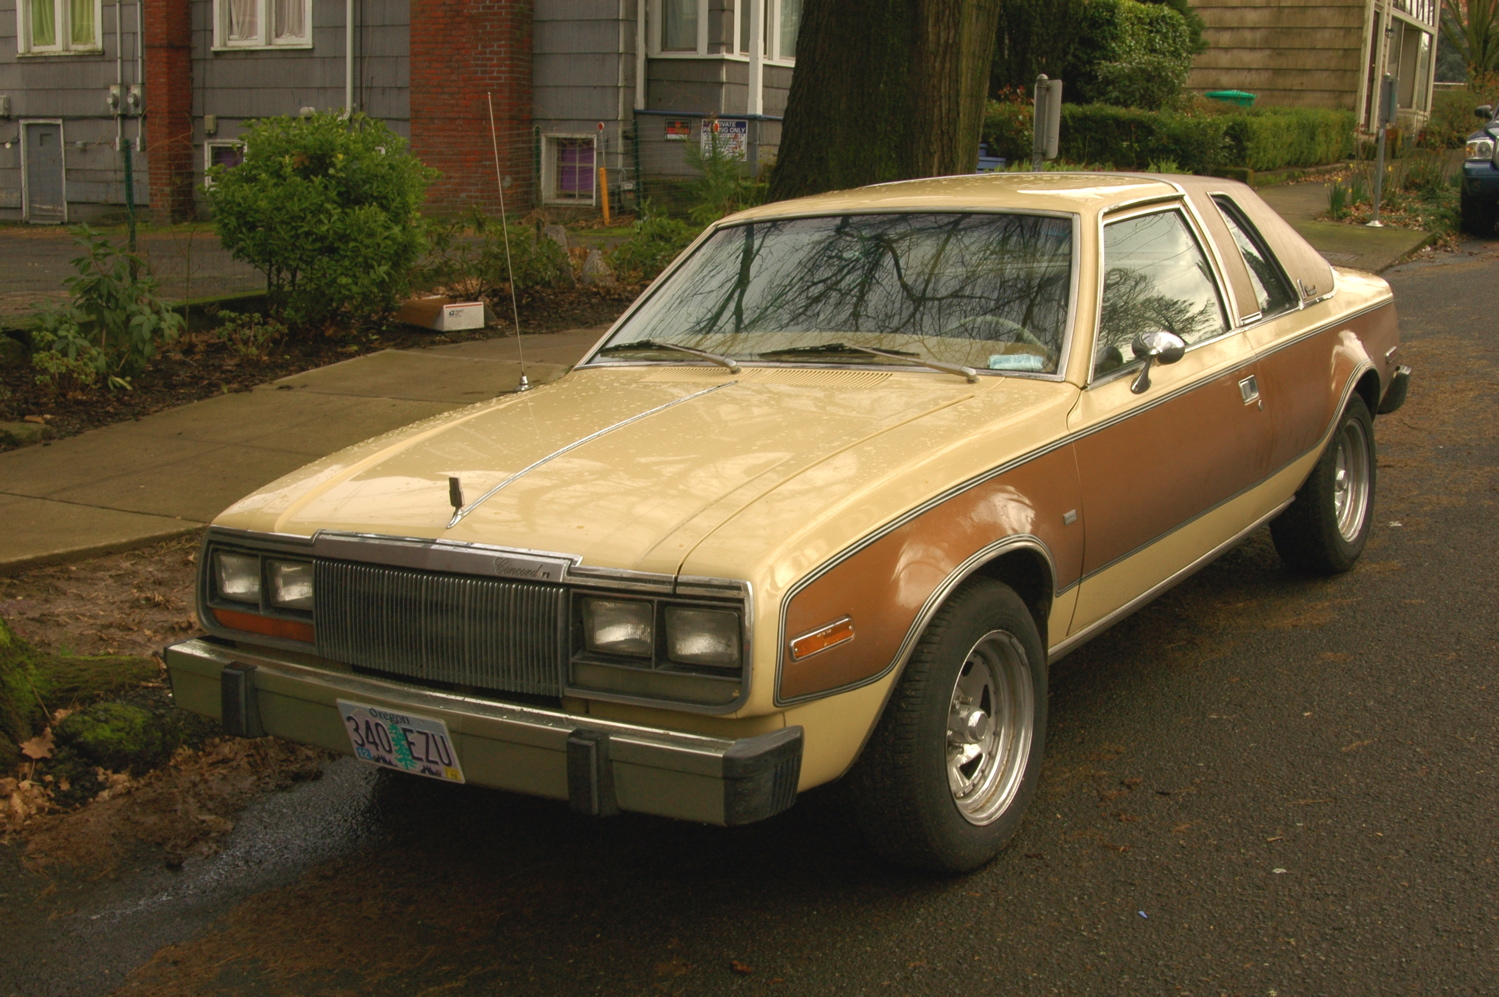 OLD PARKED CARS Saturday Bonus 1979 AMC Concord DL Revisited